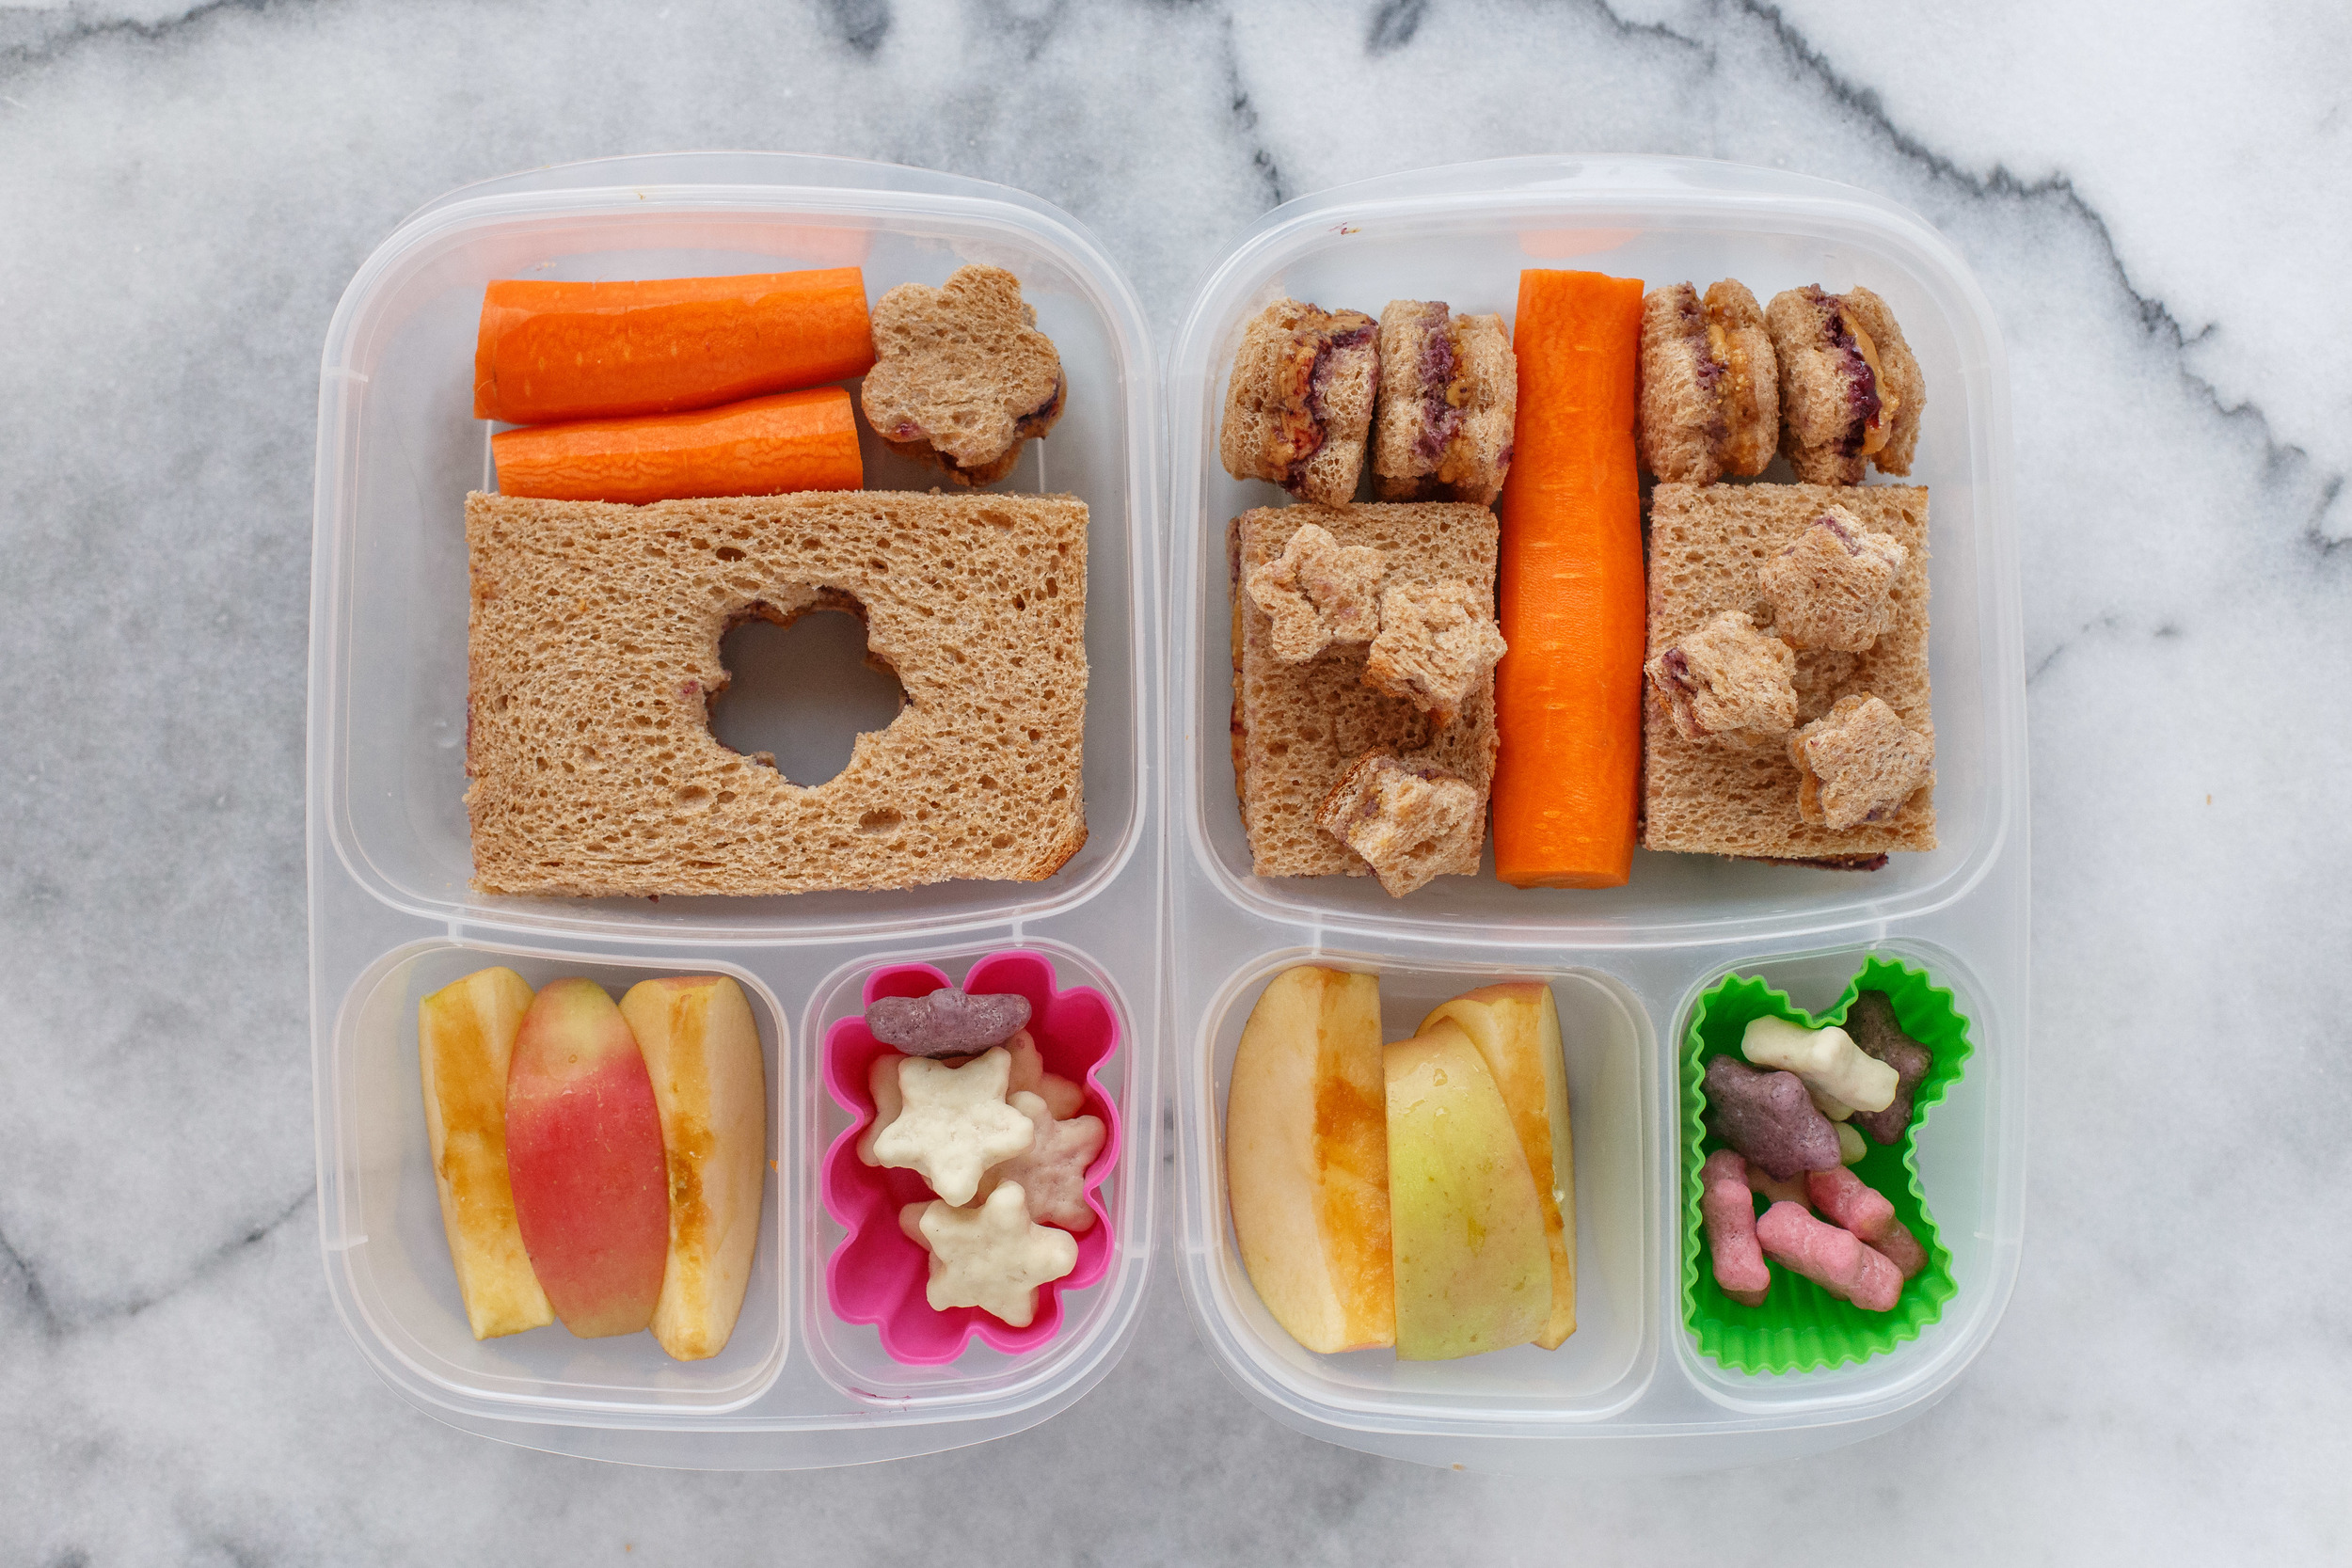 Wednesday: two stayed home sick, so only two lunches.  Peanut butter & jam on whole wheat bread, with carrots, apple, and yogurt covered star cookies.